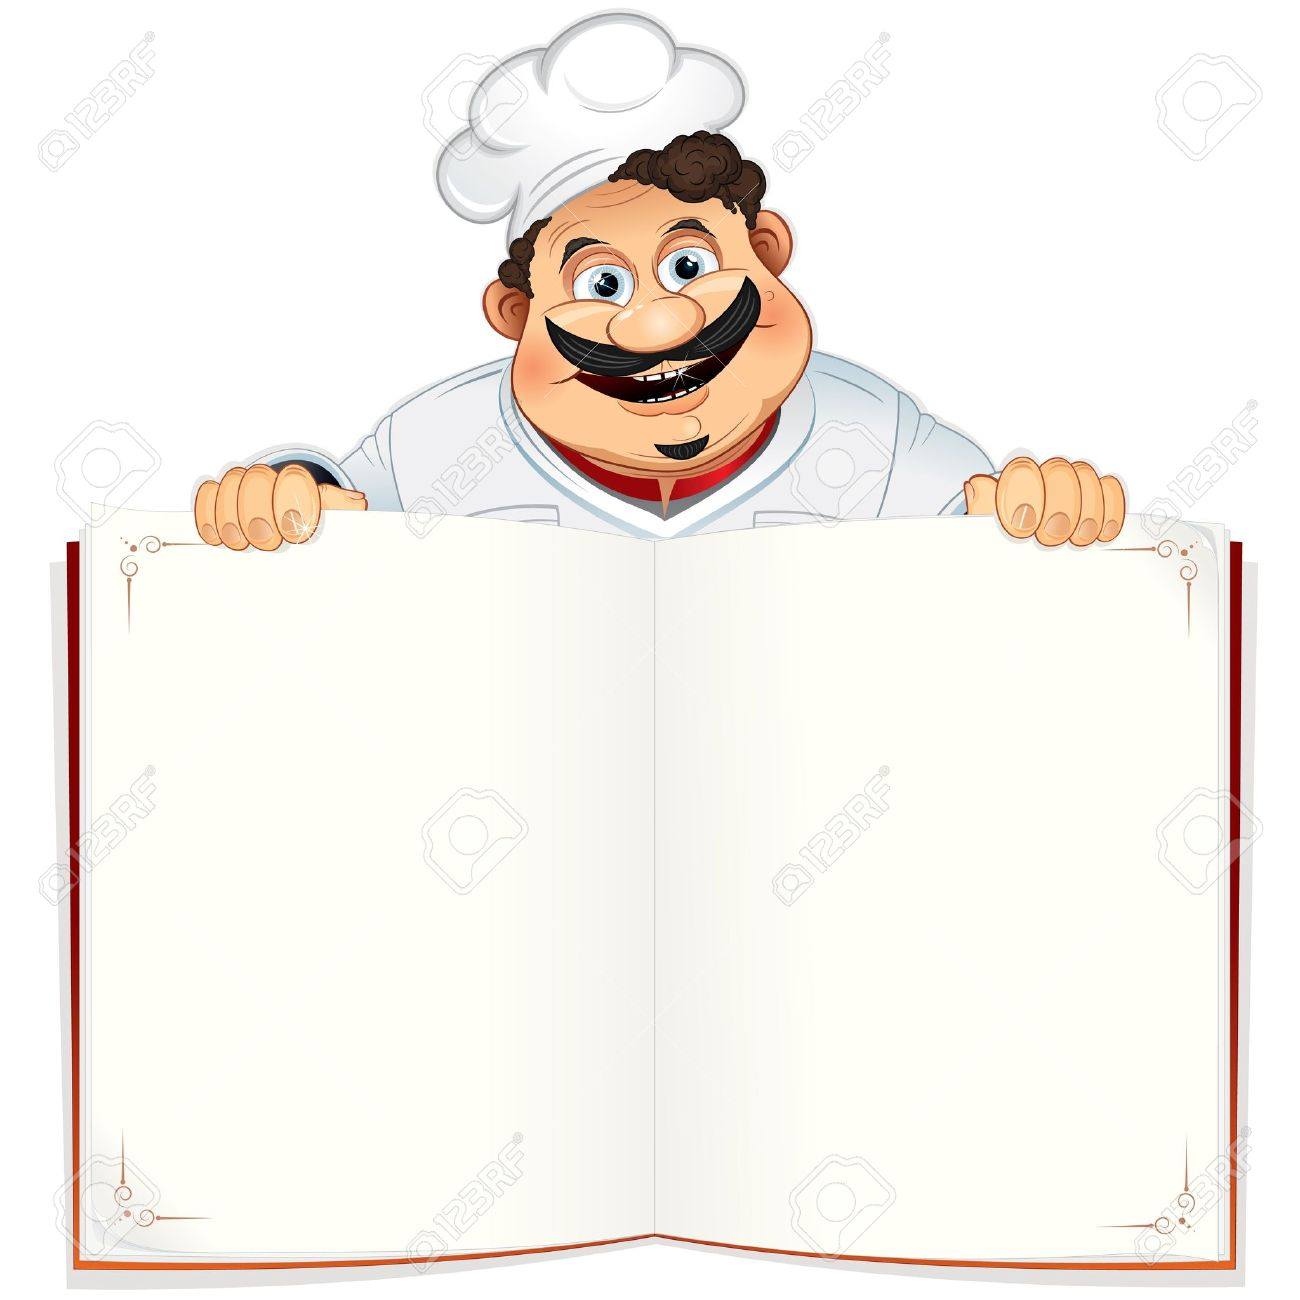 Funny Chef with Blank Cookbook, Menu or Notepad, Vector Illustration Stock Vector - 10301476